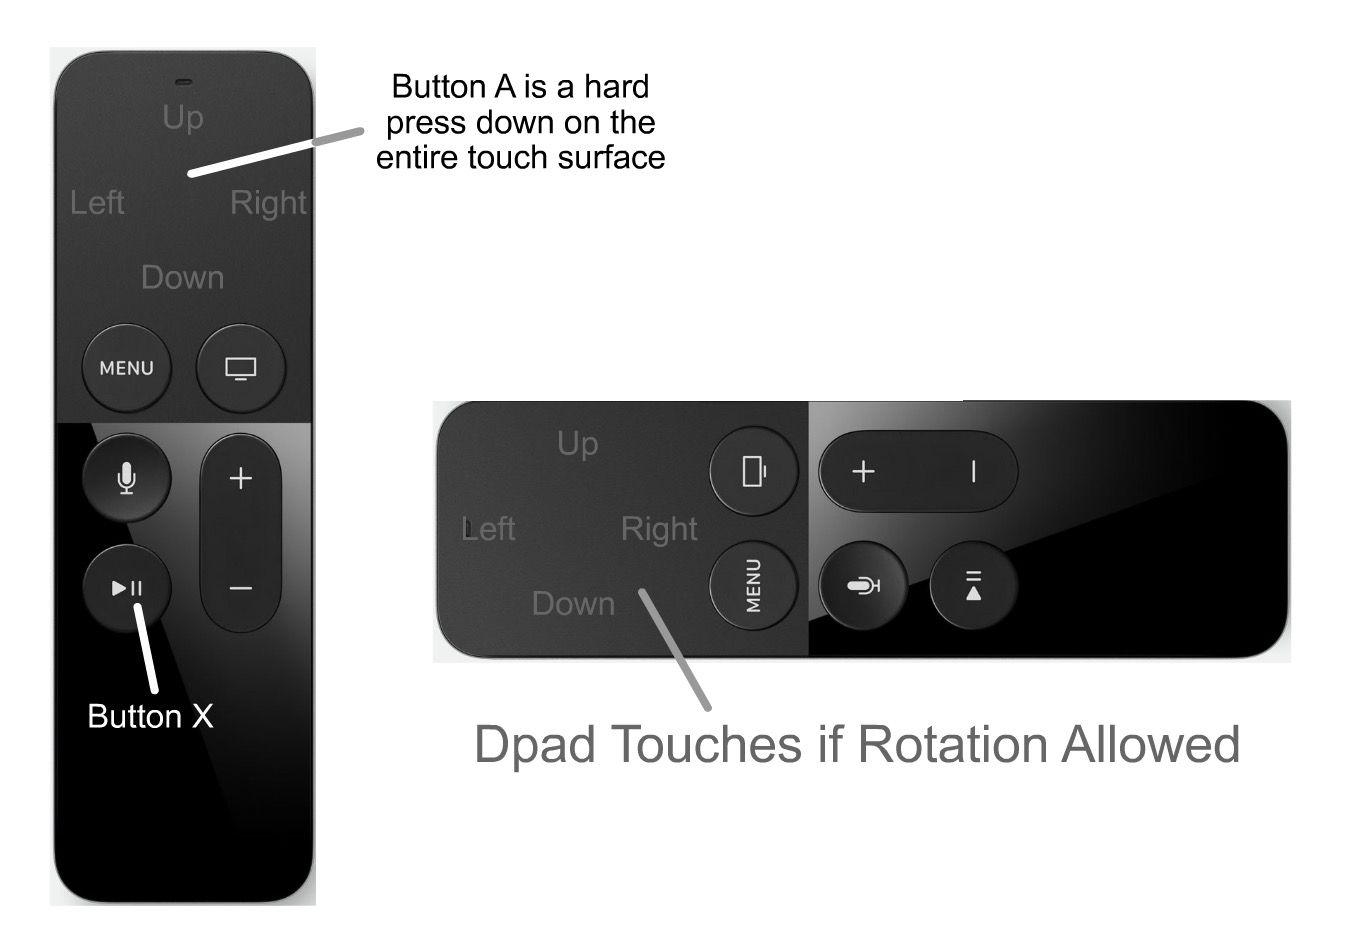 MicroGame Pad (new Apple TV Remote) buttonA and ButtonX